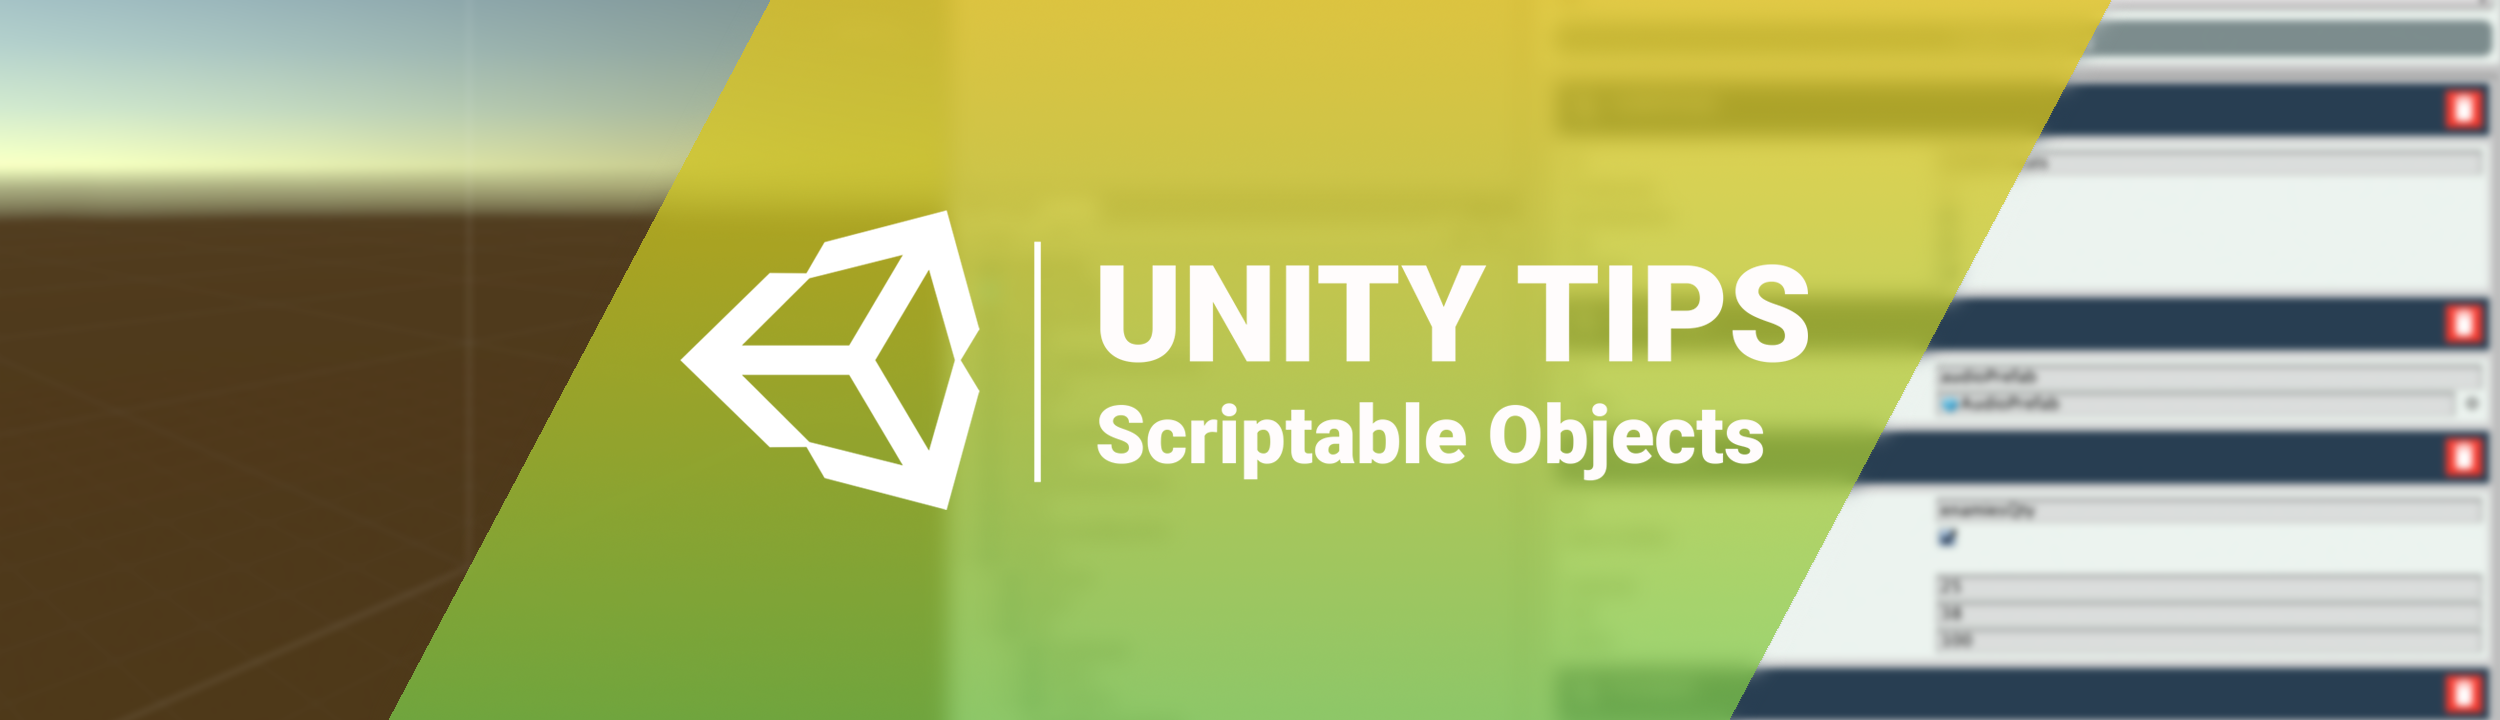 Unity Tips: Scriptable Objects - Martin Gonzalez - Medium